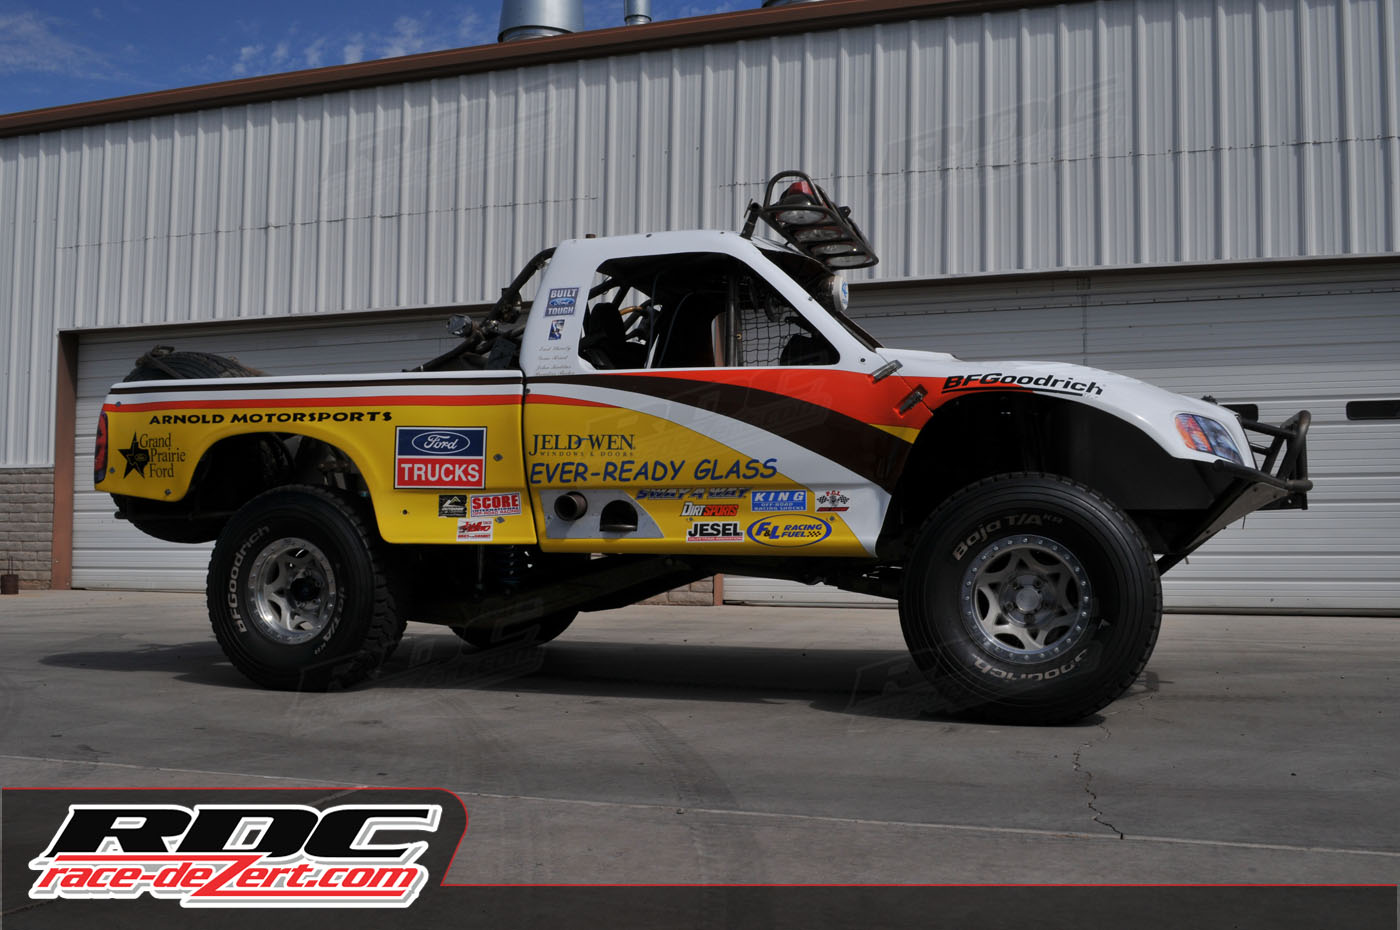 Lowell Arnold Ford Class 8 Fuel Filters Ron Davis Radiator Howe Power Steering Box And Ram Fuidyne Coolers On Board Fire Extinguish System Aeromotive Pumps